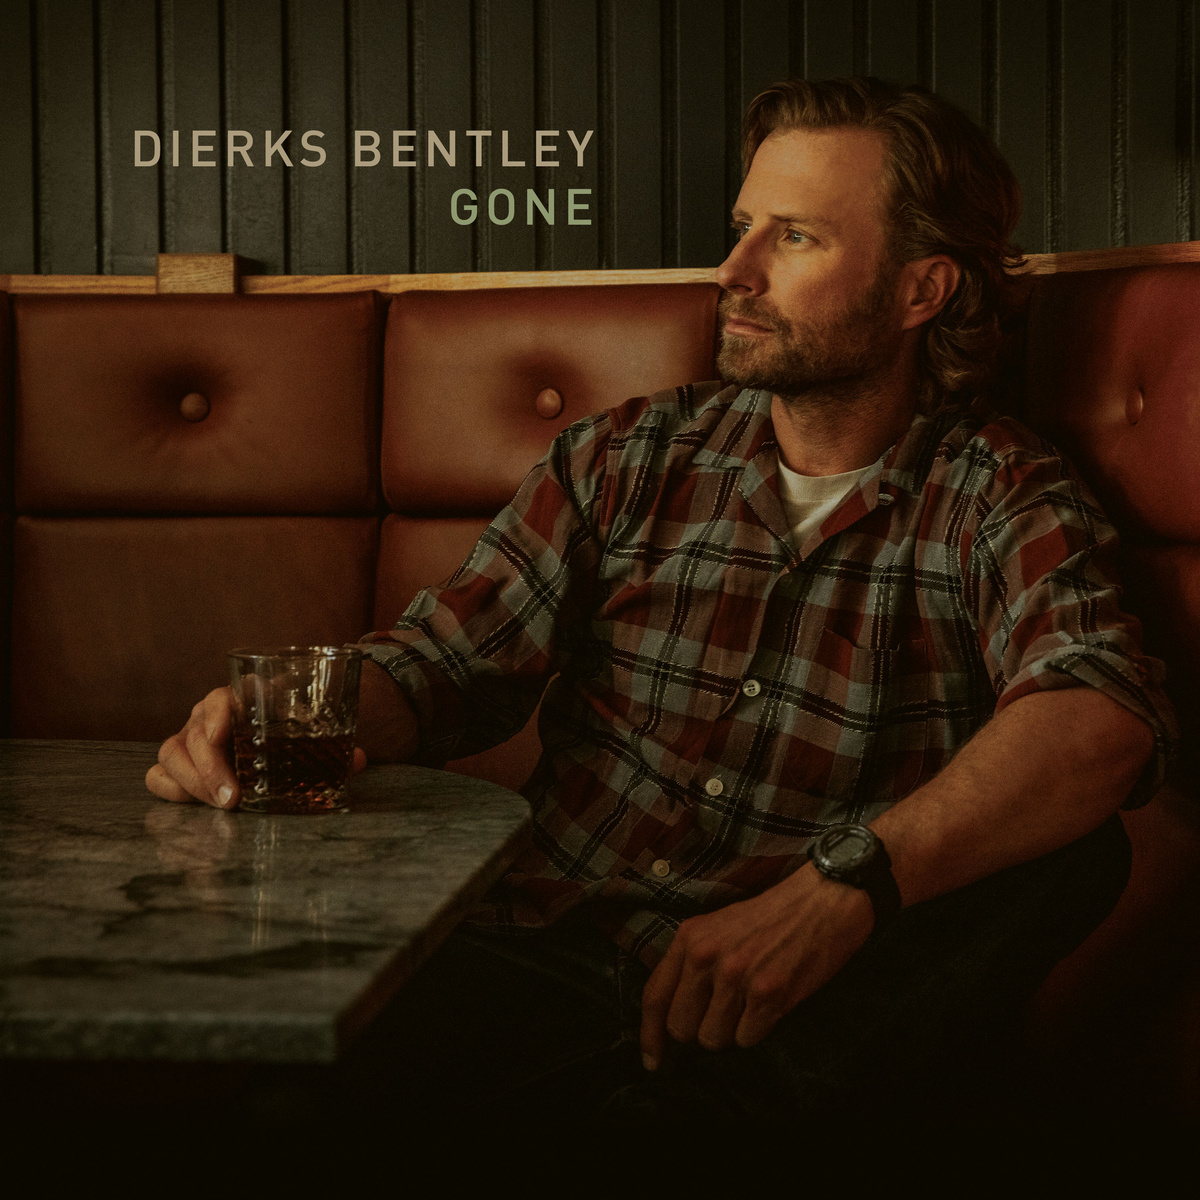 dierks-bentley-gone